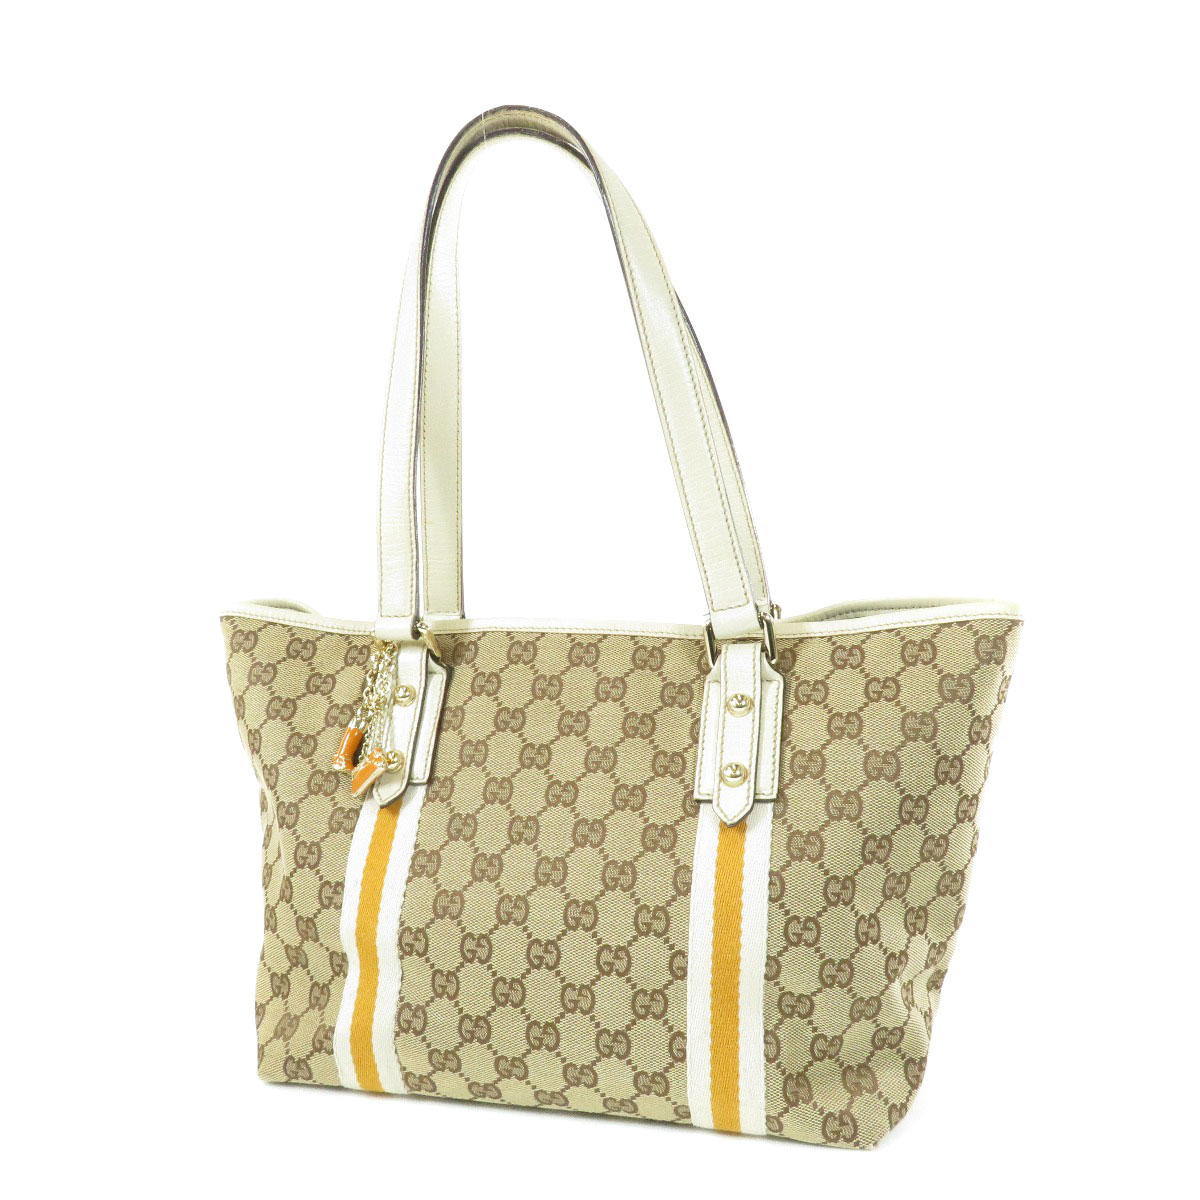 318b96b90031 GUCCI 【Gucci】 137396 Tote Bag Canvas Women ー The best place to ...